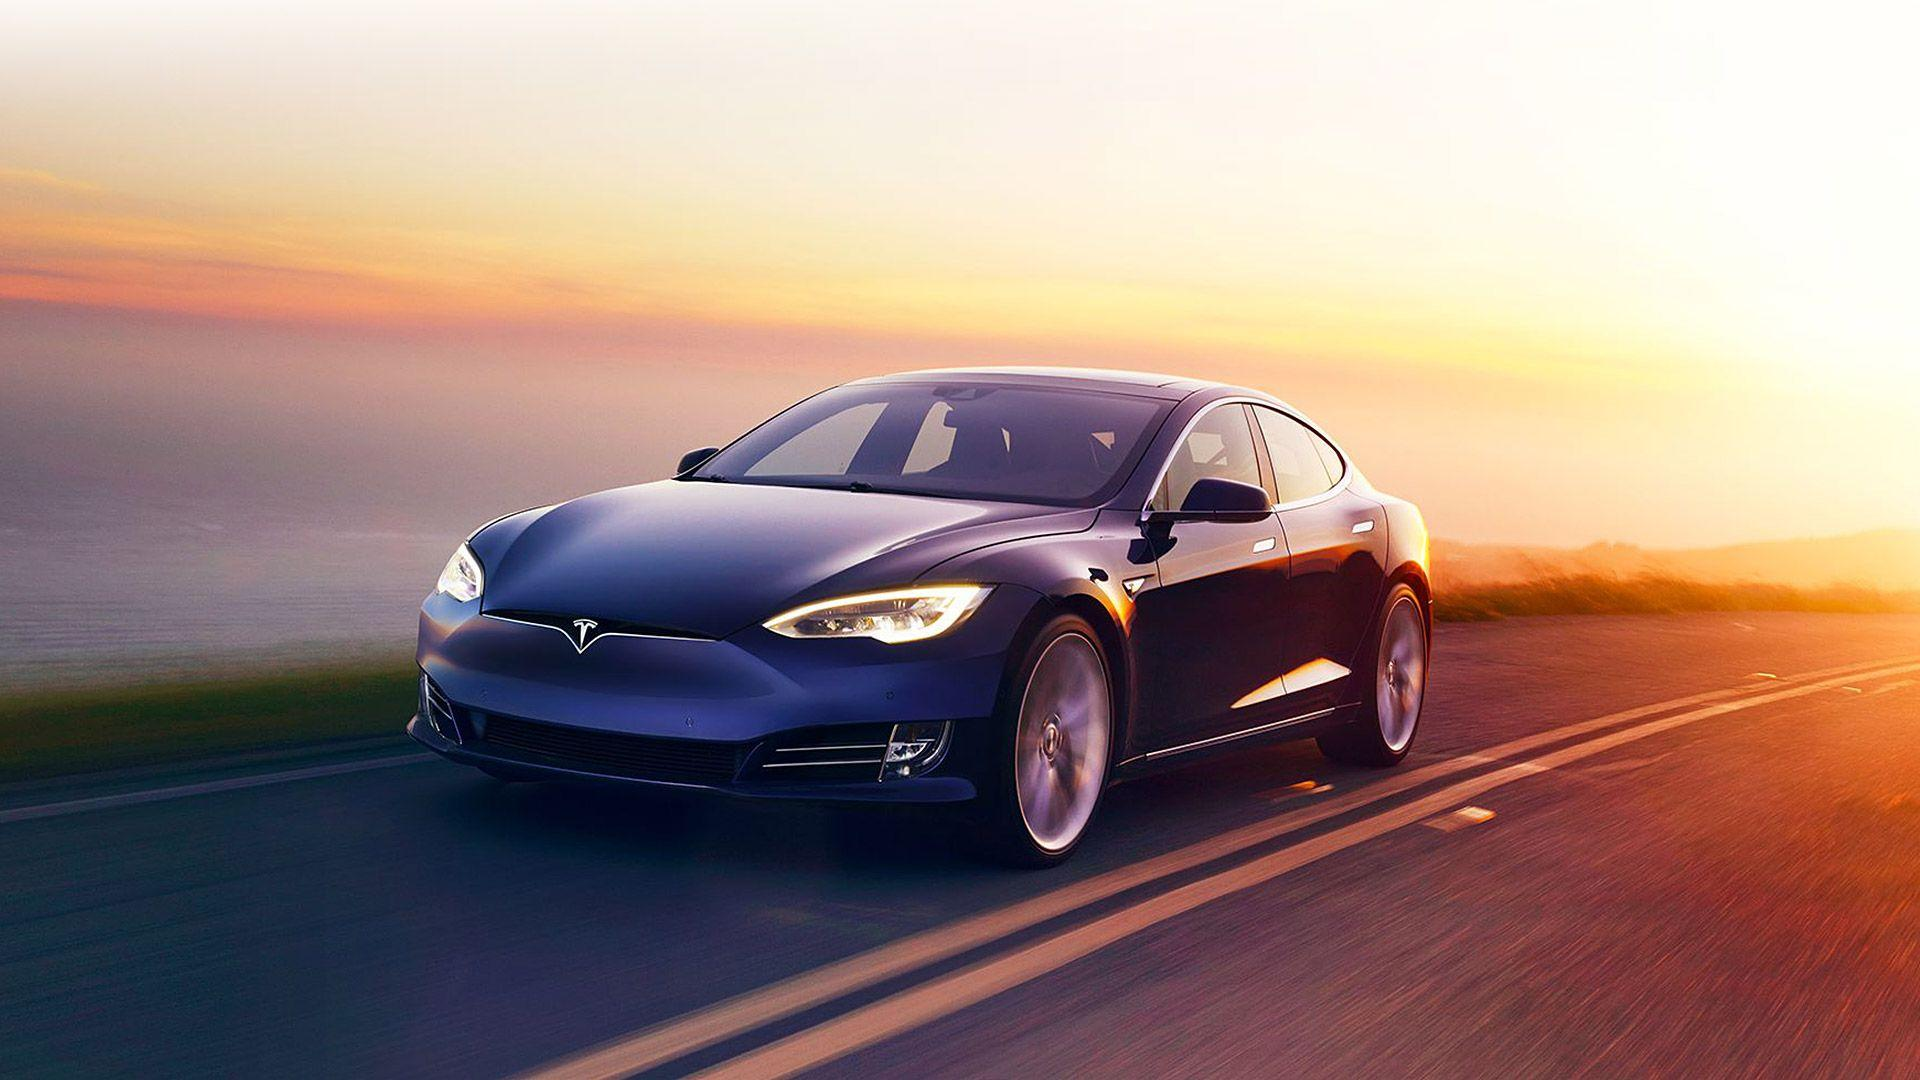 Musk Says Tesla Model S, Model X Volume 'Not All That